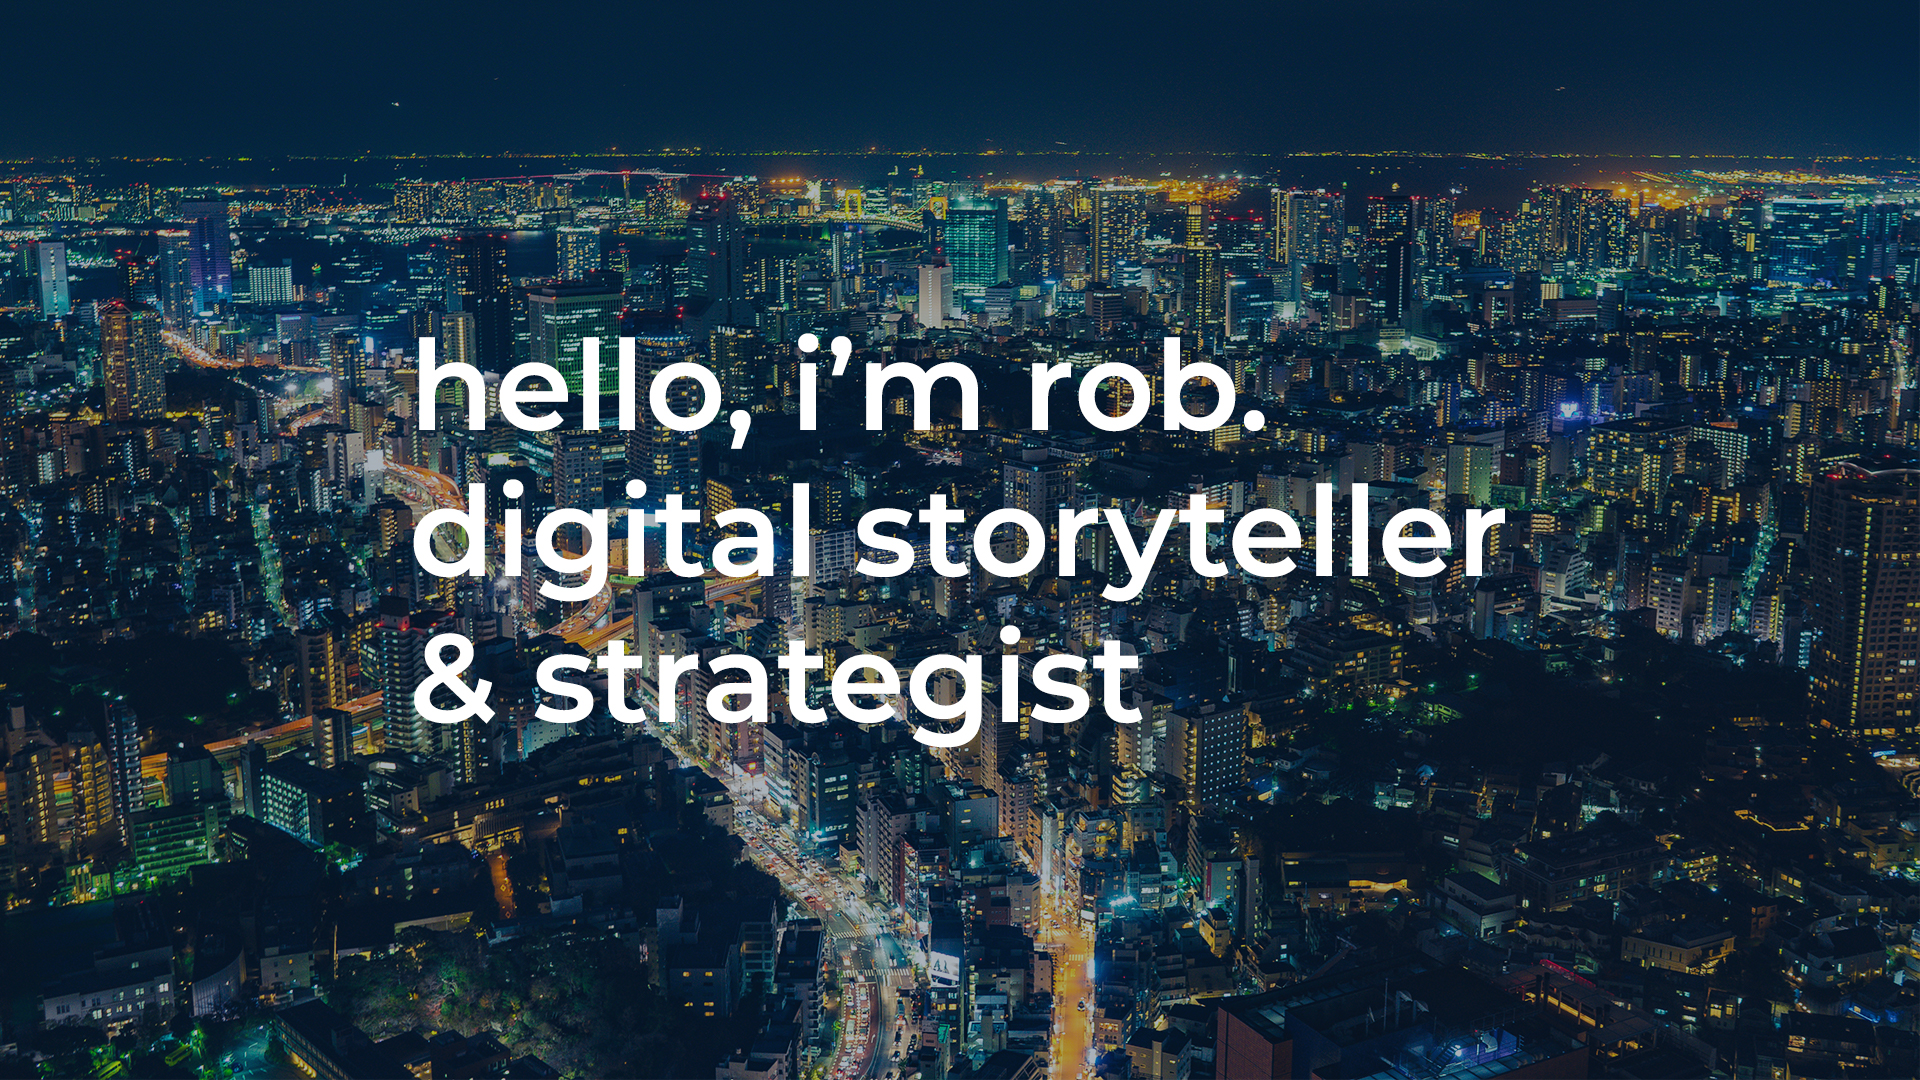 hello, i'm rob. digital storyteller and strategist